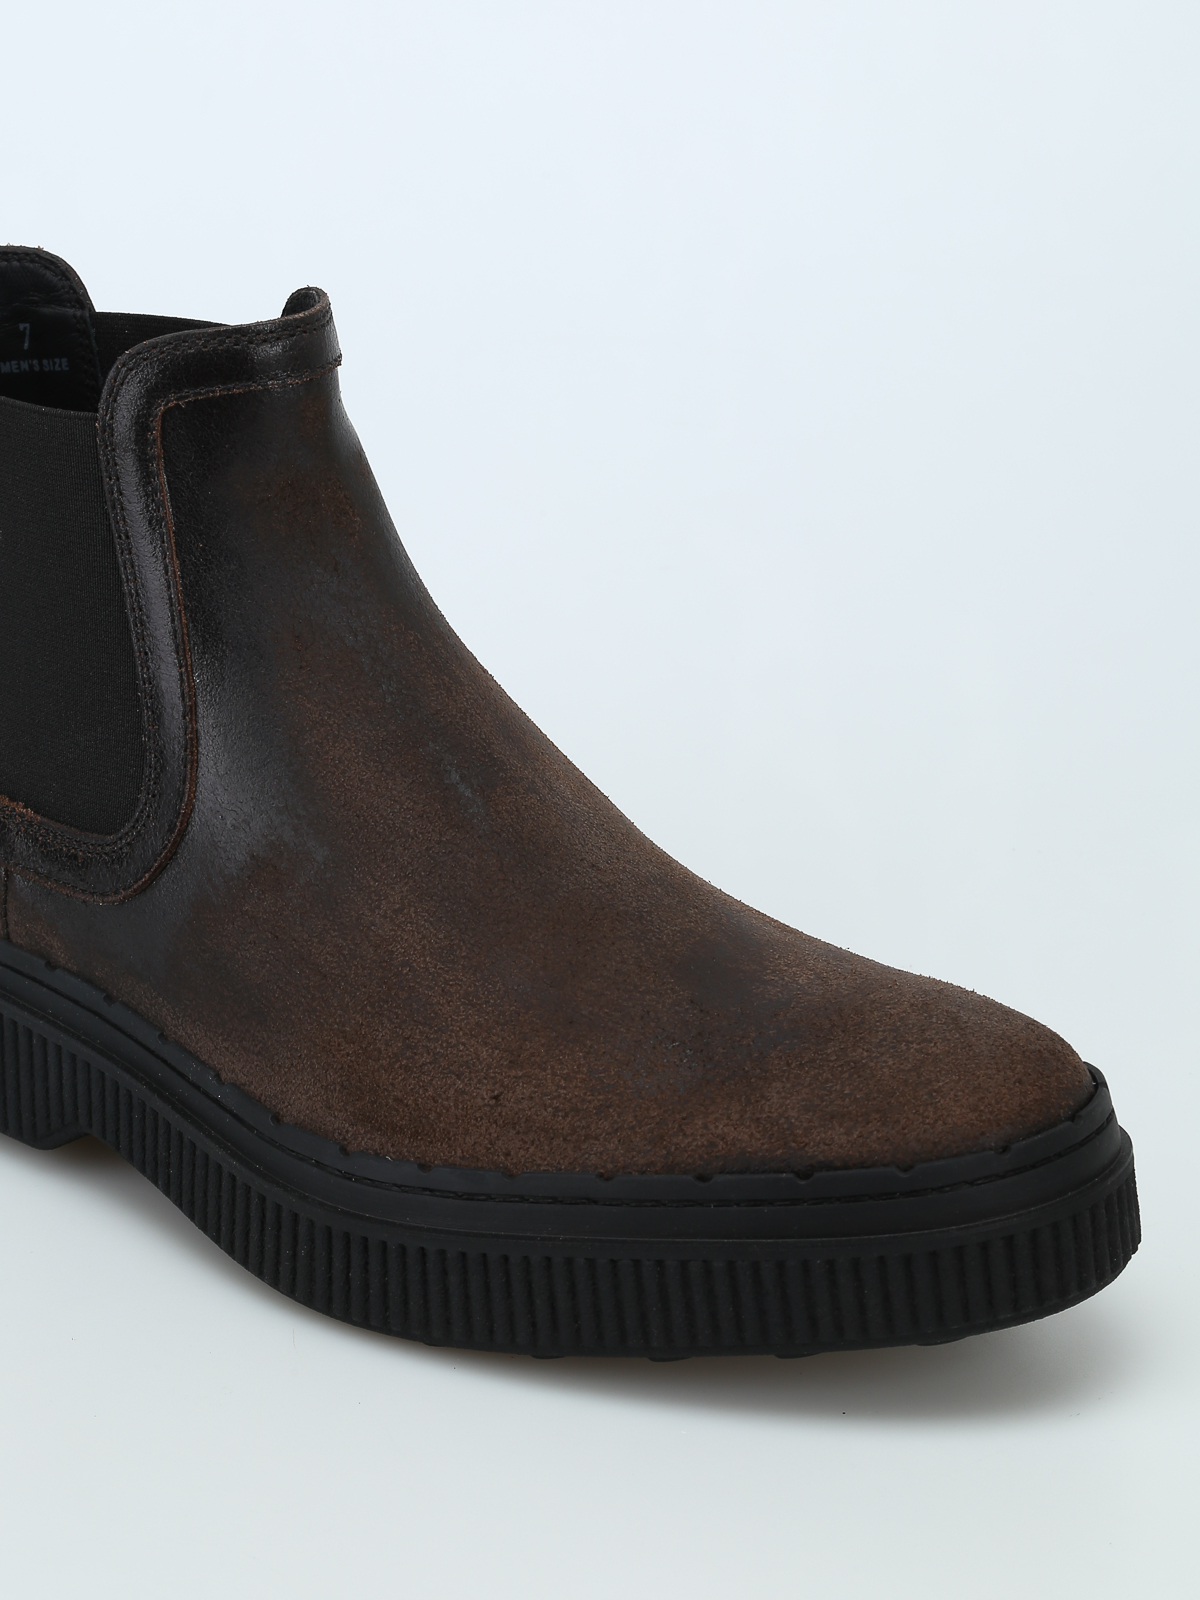 Used effect leather Chelsea boots TOD